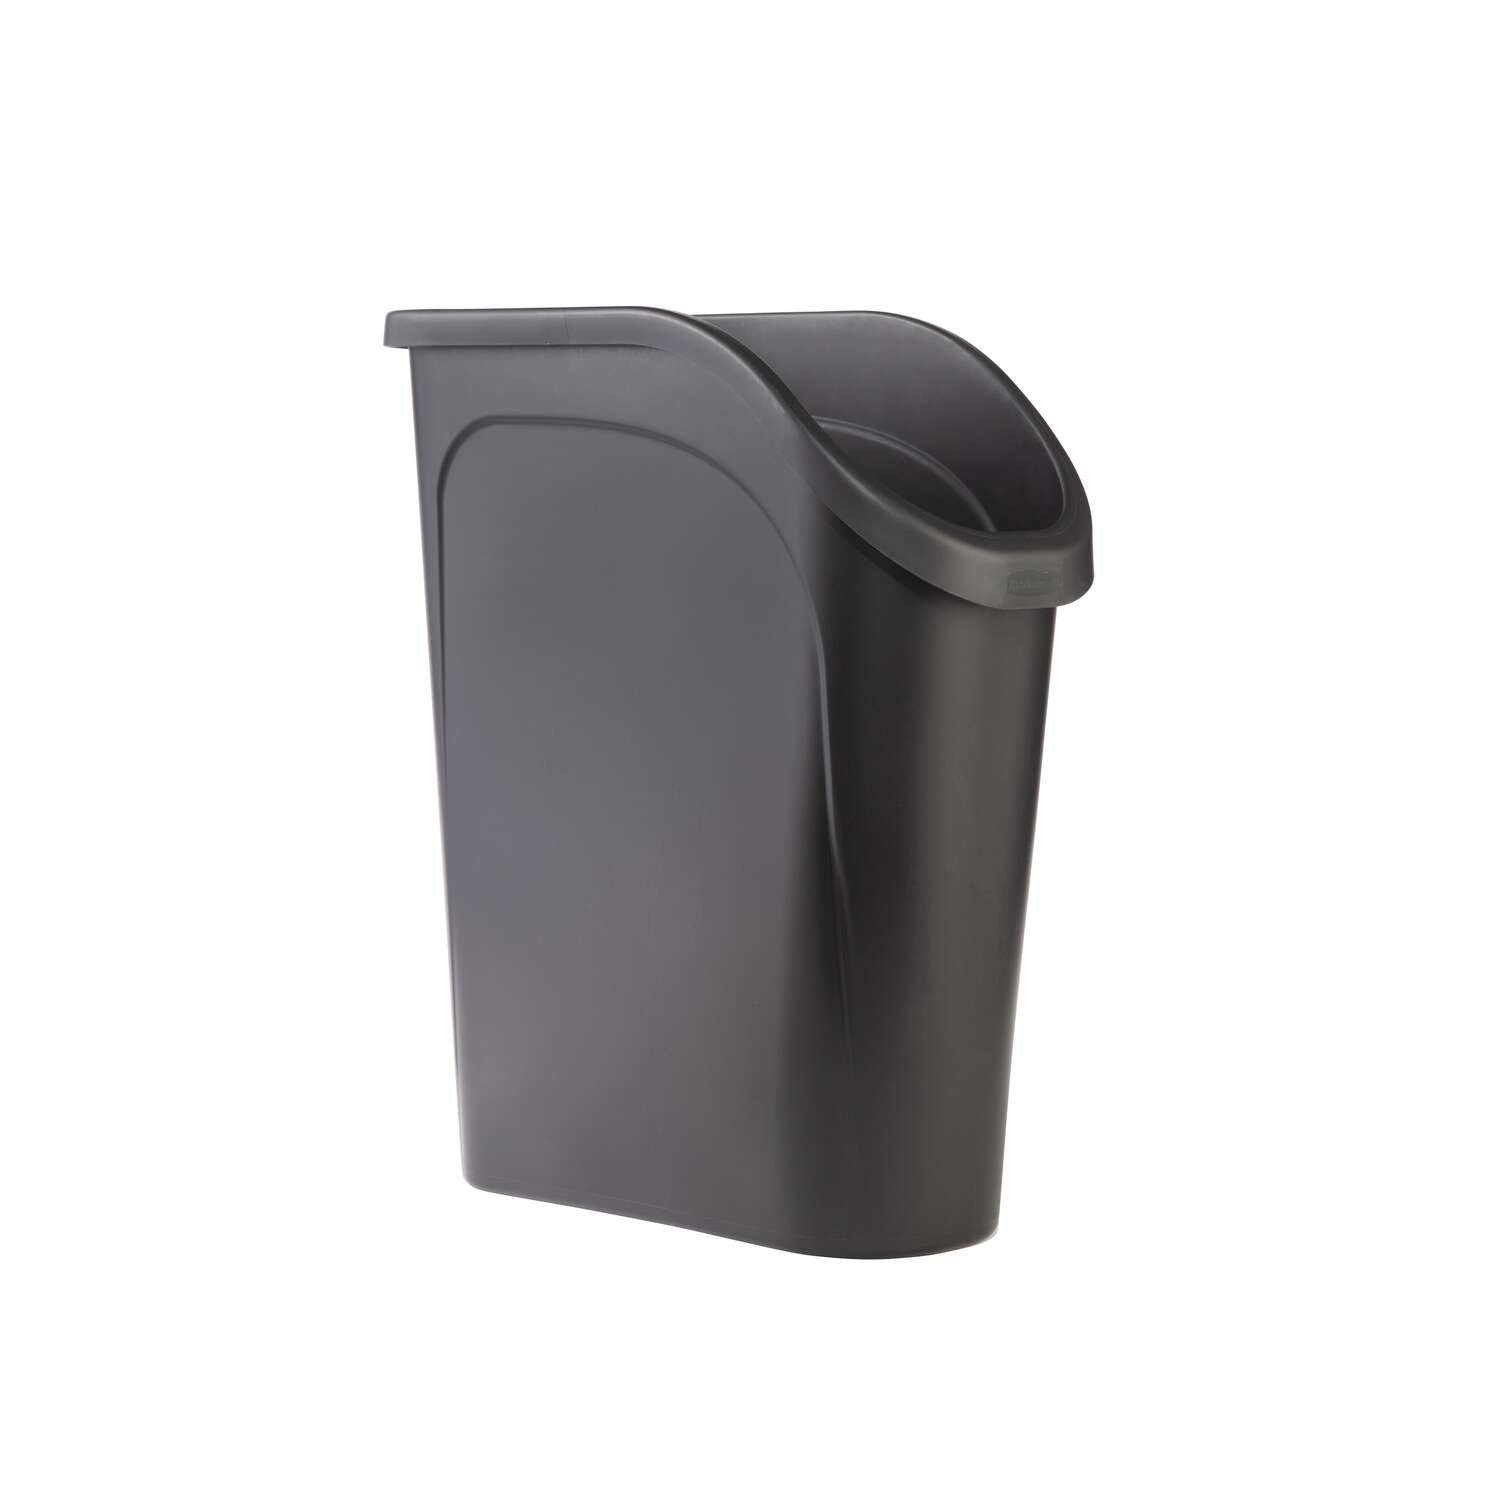 Rubbermaid 6.4 gal. Black Resin Under Counter Wastebasket